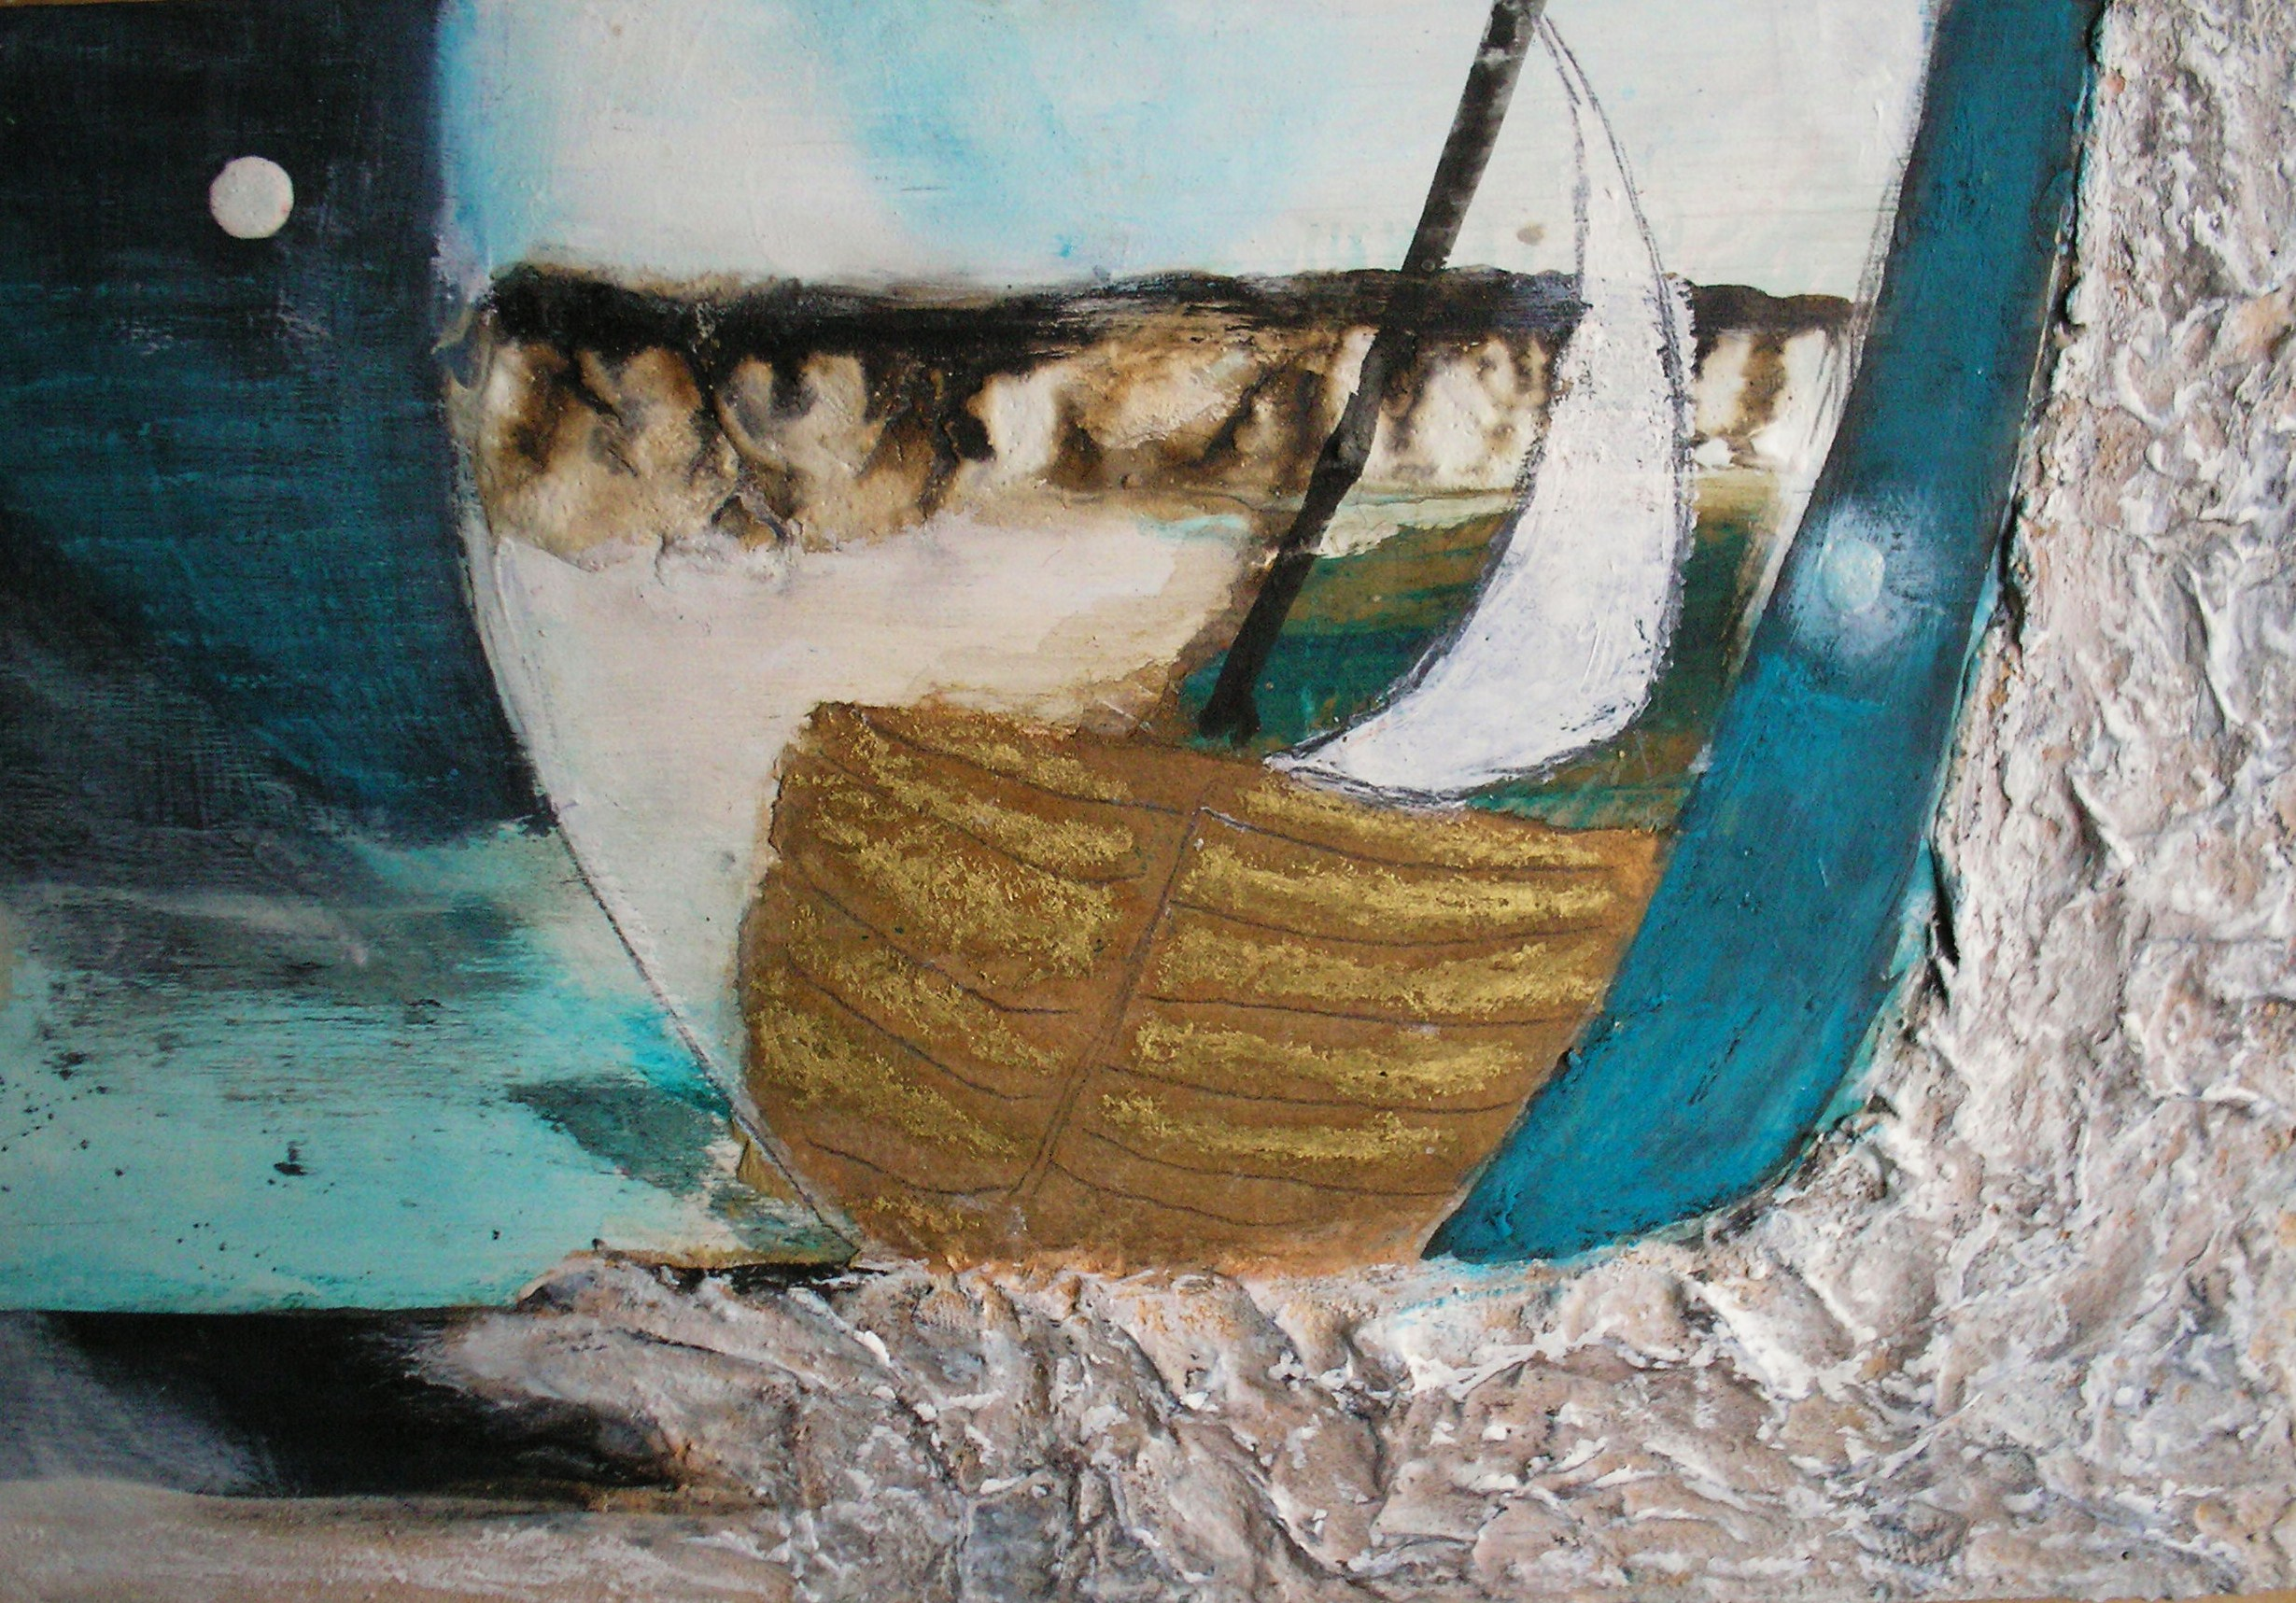 Voyage by Gail de Cordova at the Saffron Walden Gallery